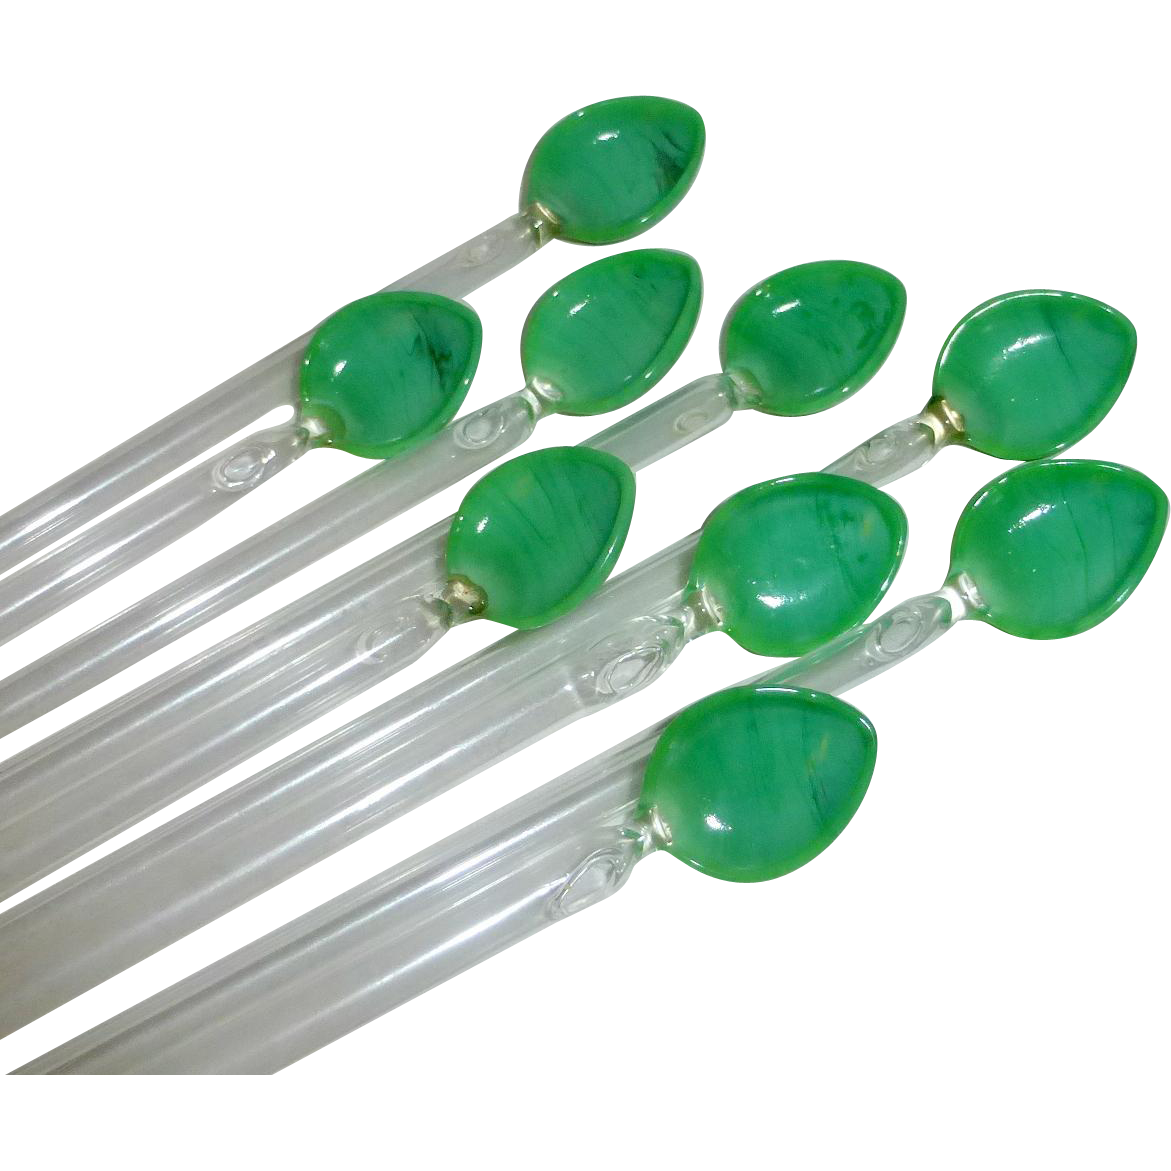 9 Vintage Glass Iced Tea Straws / Swizzle Sticks with Mint Green Leaves